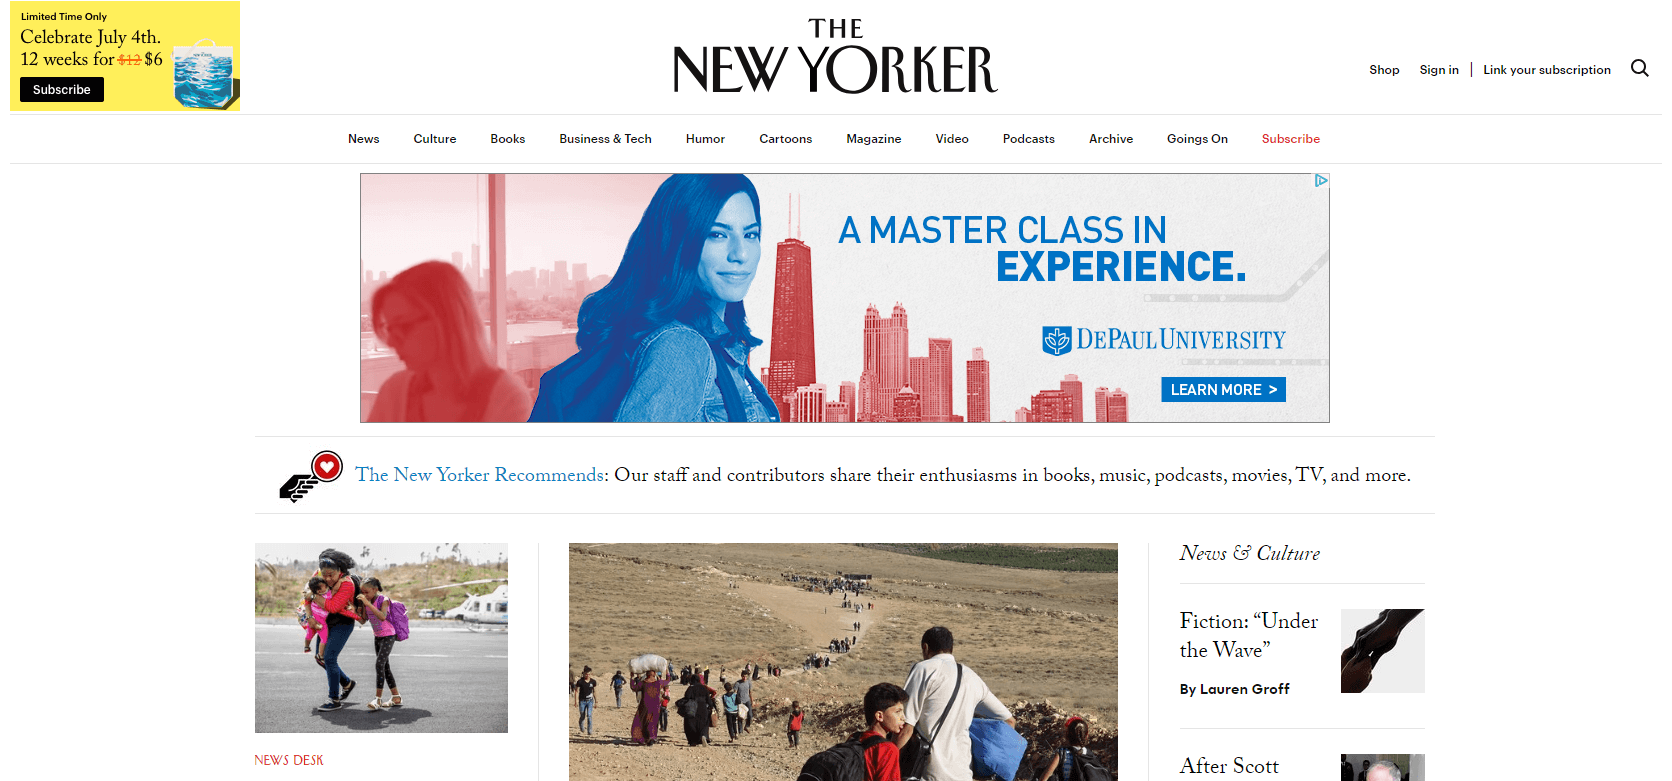 The New Yorker website.